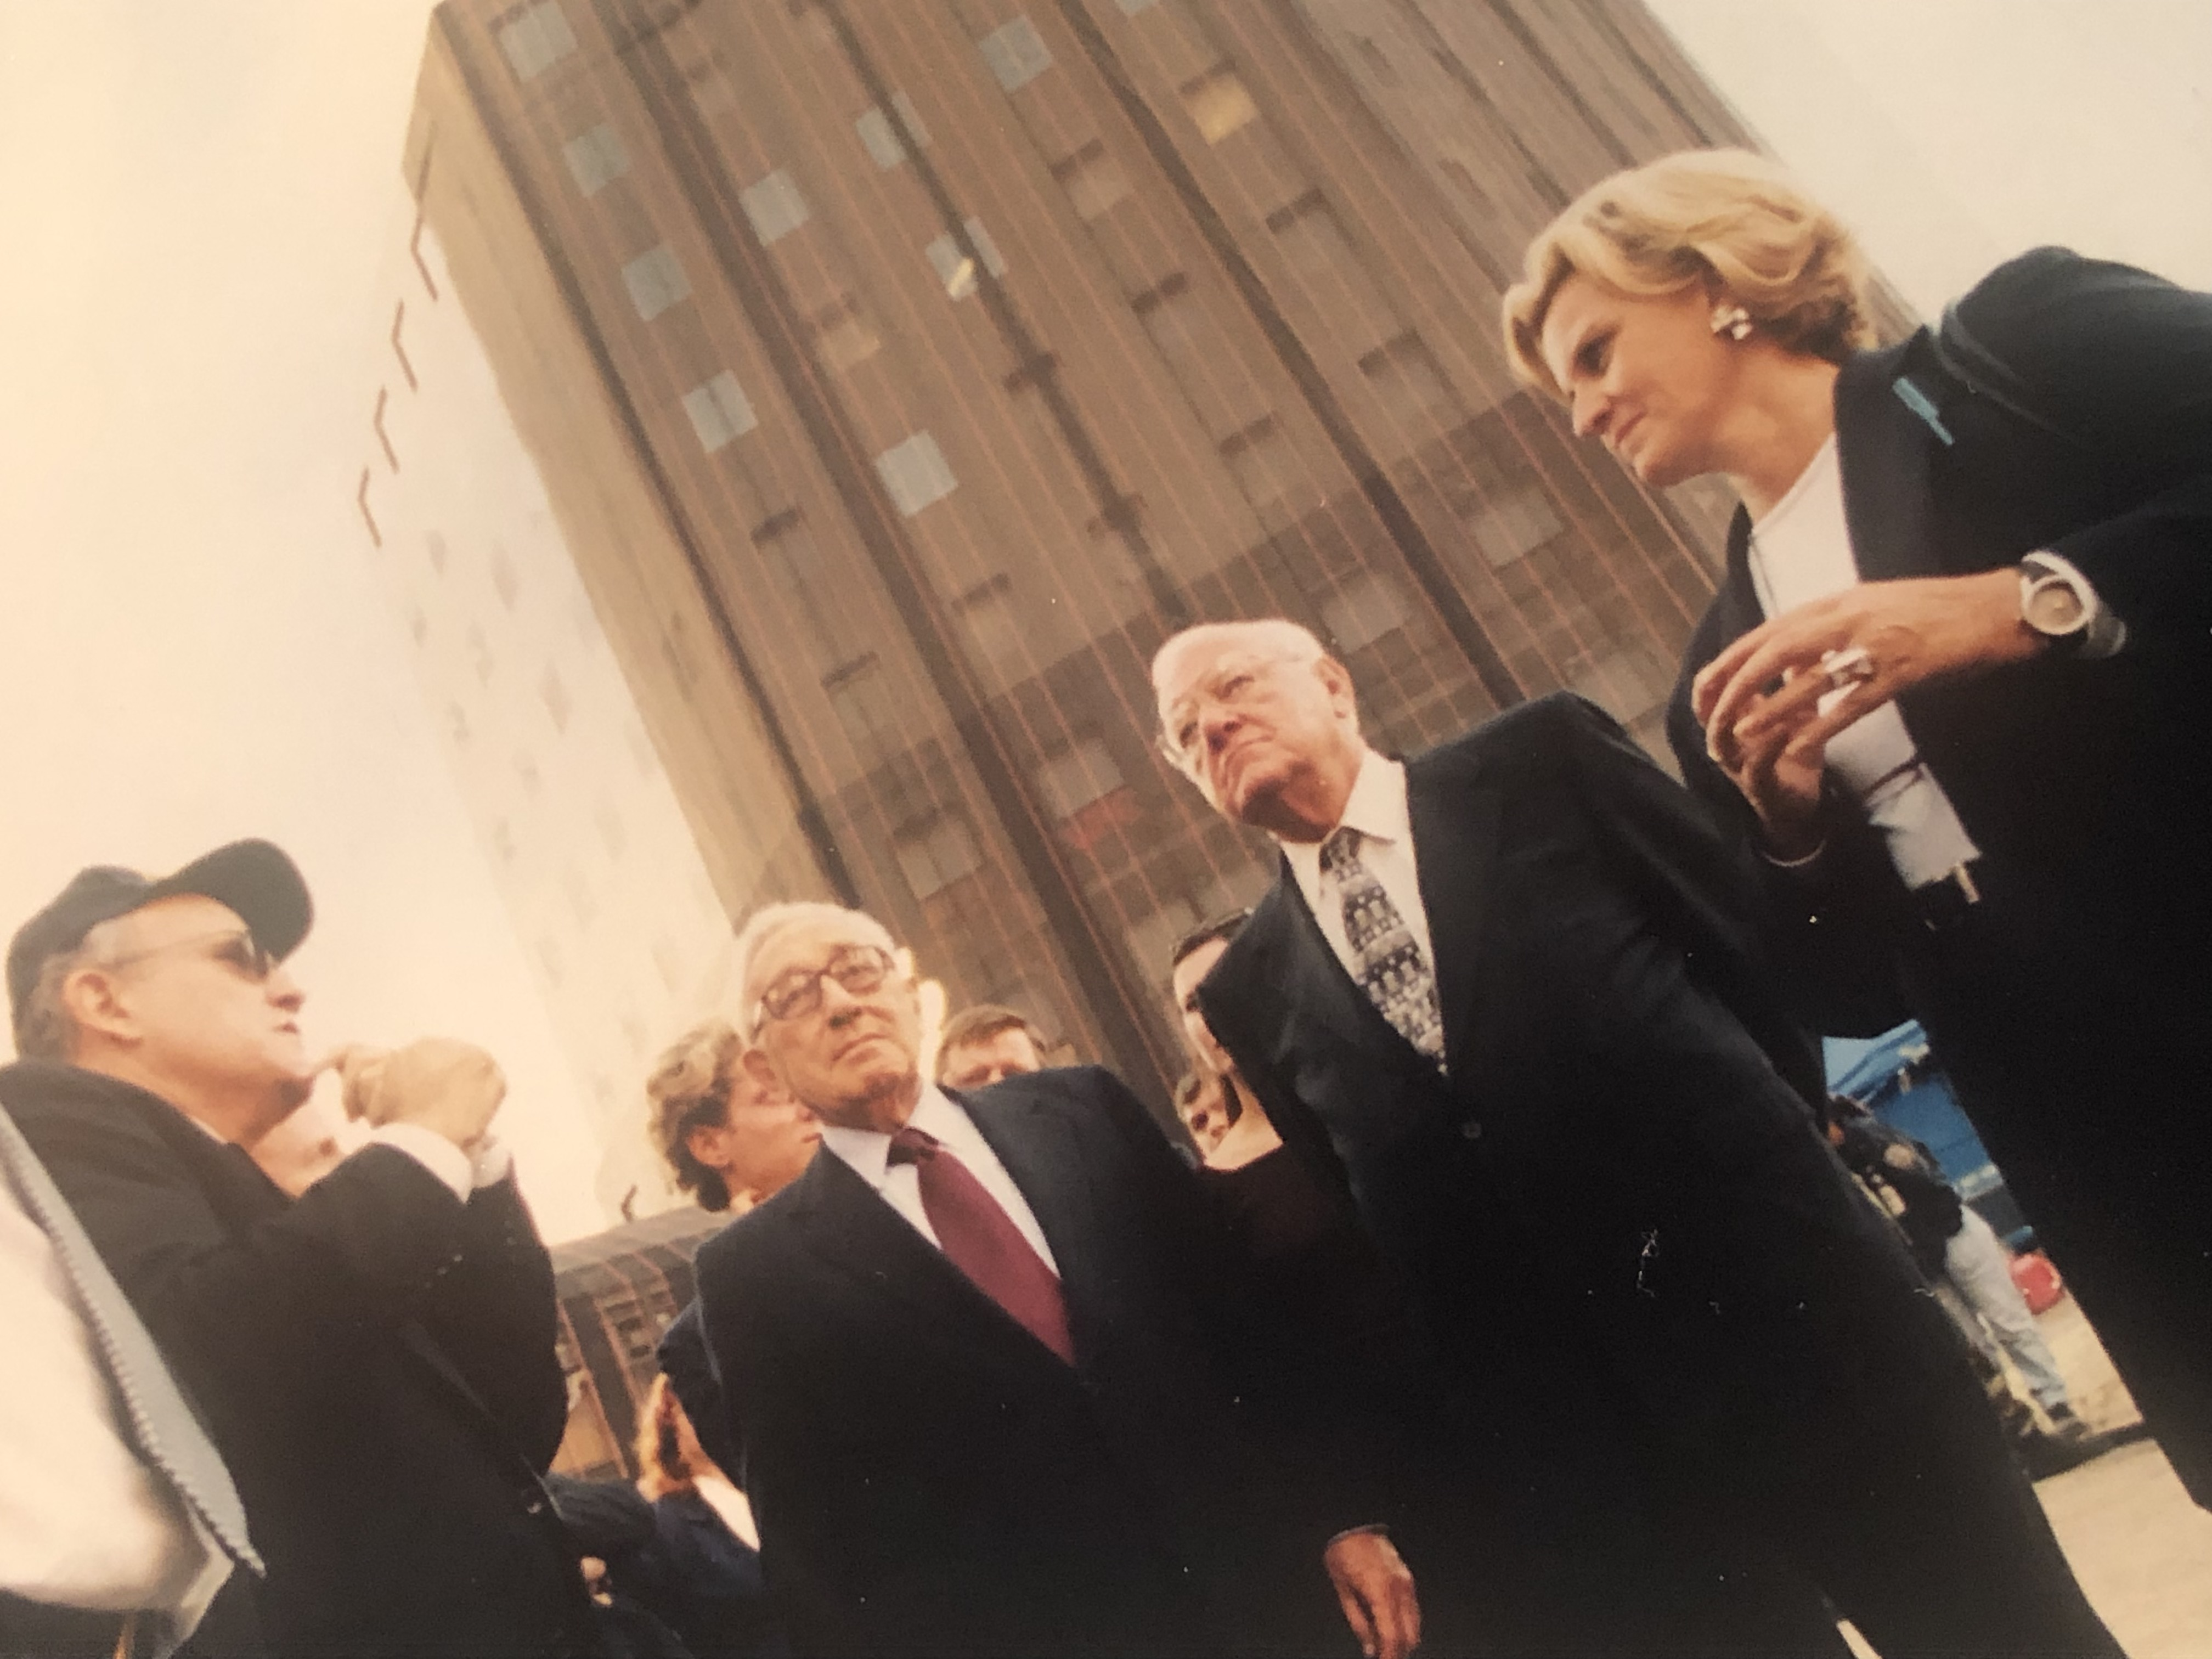 Then-New York Mayor Rudy Giuliani (from left), Henry Kissinger, George Ryan and Sneed at Ground Zero soon after Sept. 11, 2001.